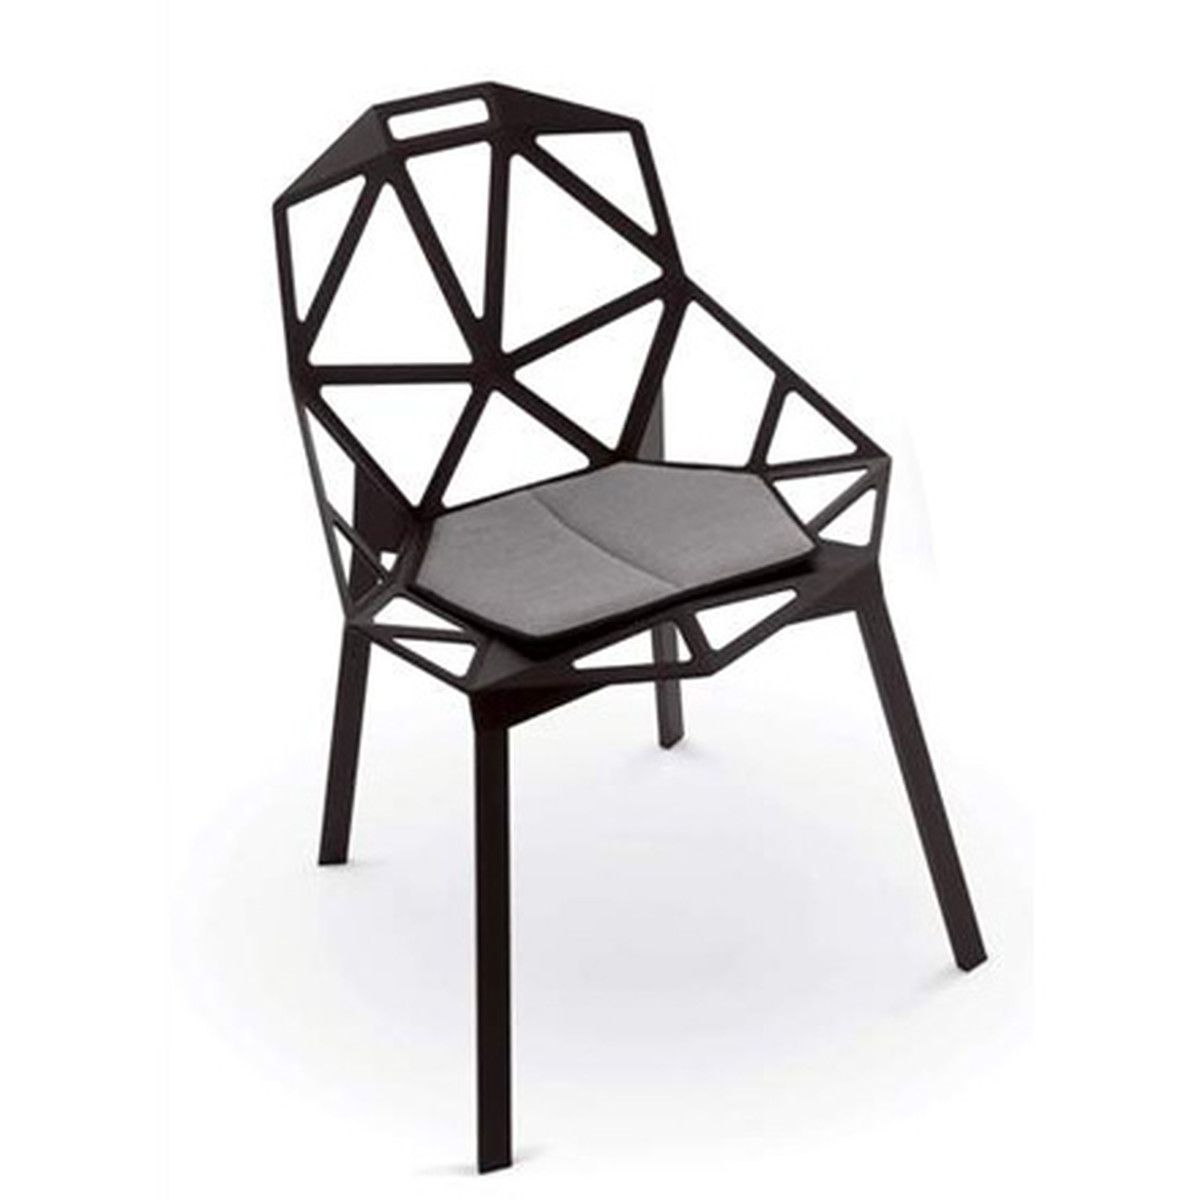 Chair One magis chair one stapelstuhl schwarz futuristic interior